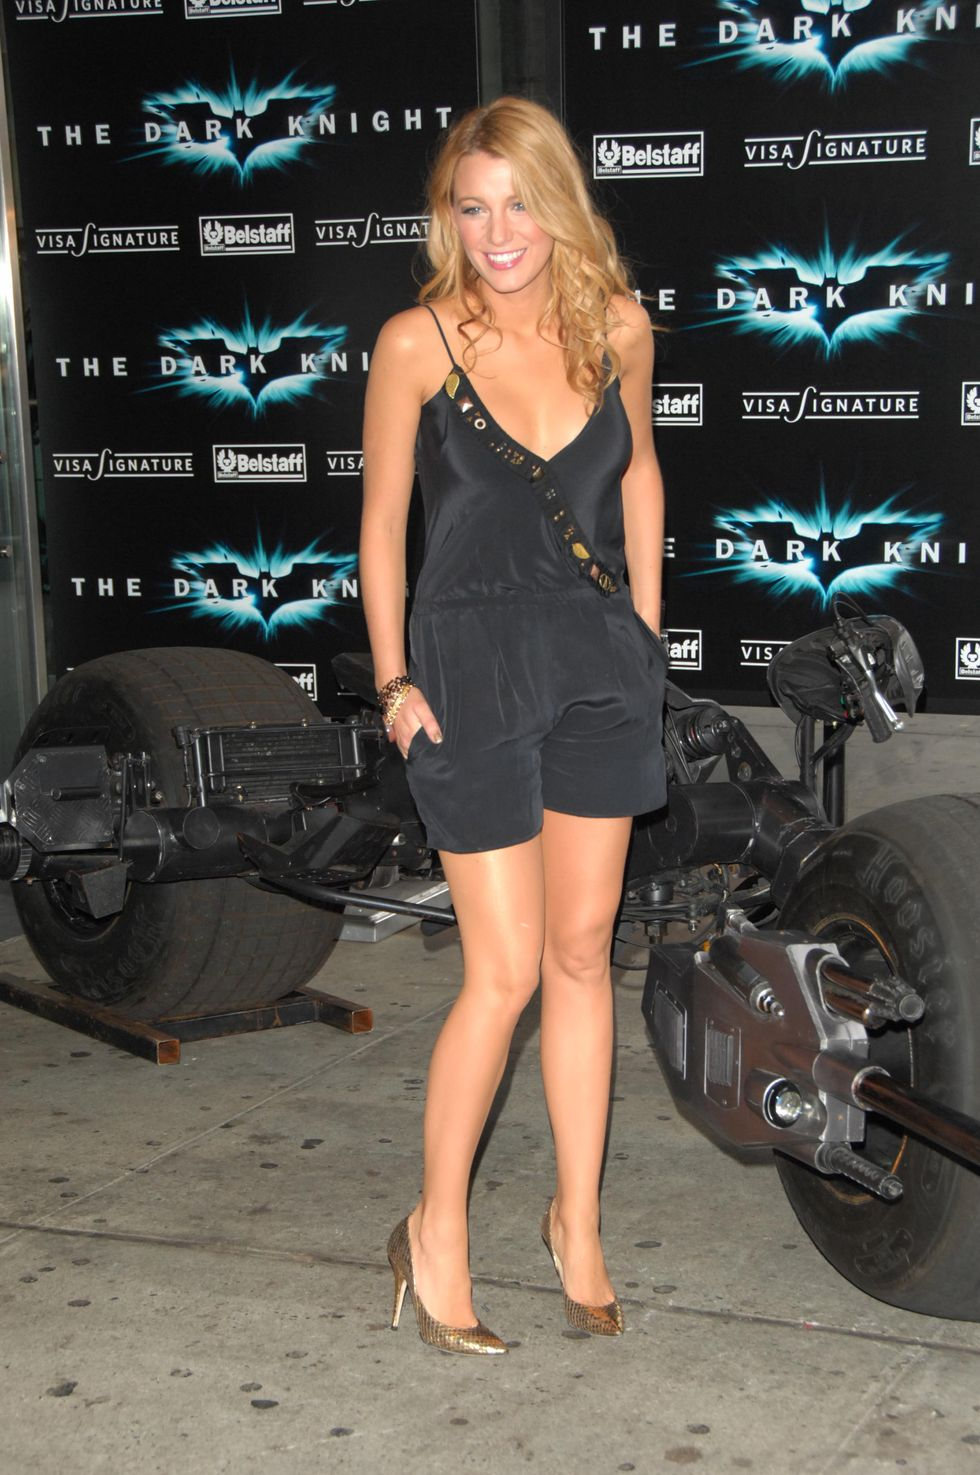 blake-lively-and-lauren-conrad-the-dark-knight-premiere-in-new-york-01